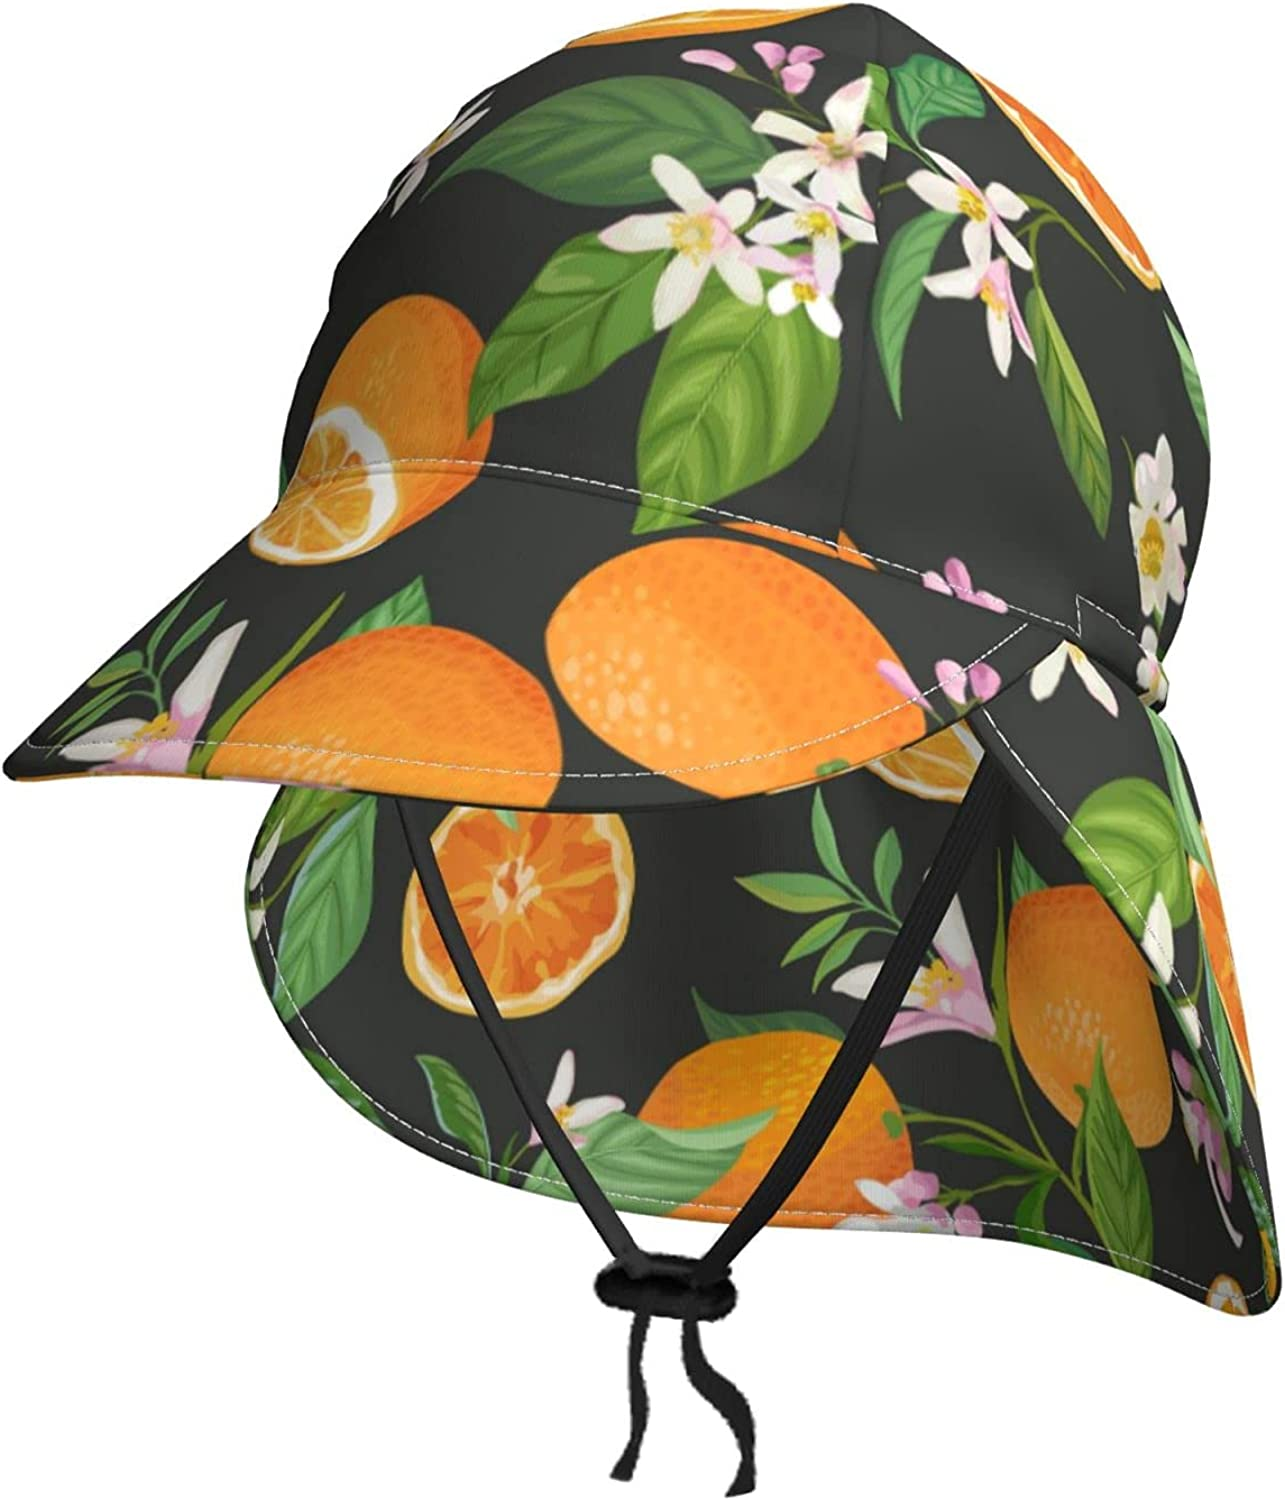 Tropical Max 81% OFF Fruit Slice Orange Brand new Kids Sun Neck Hat S Summer Flap with